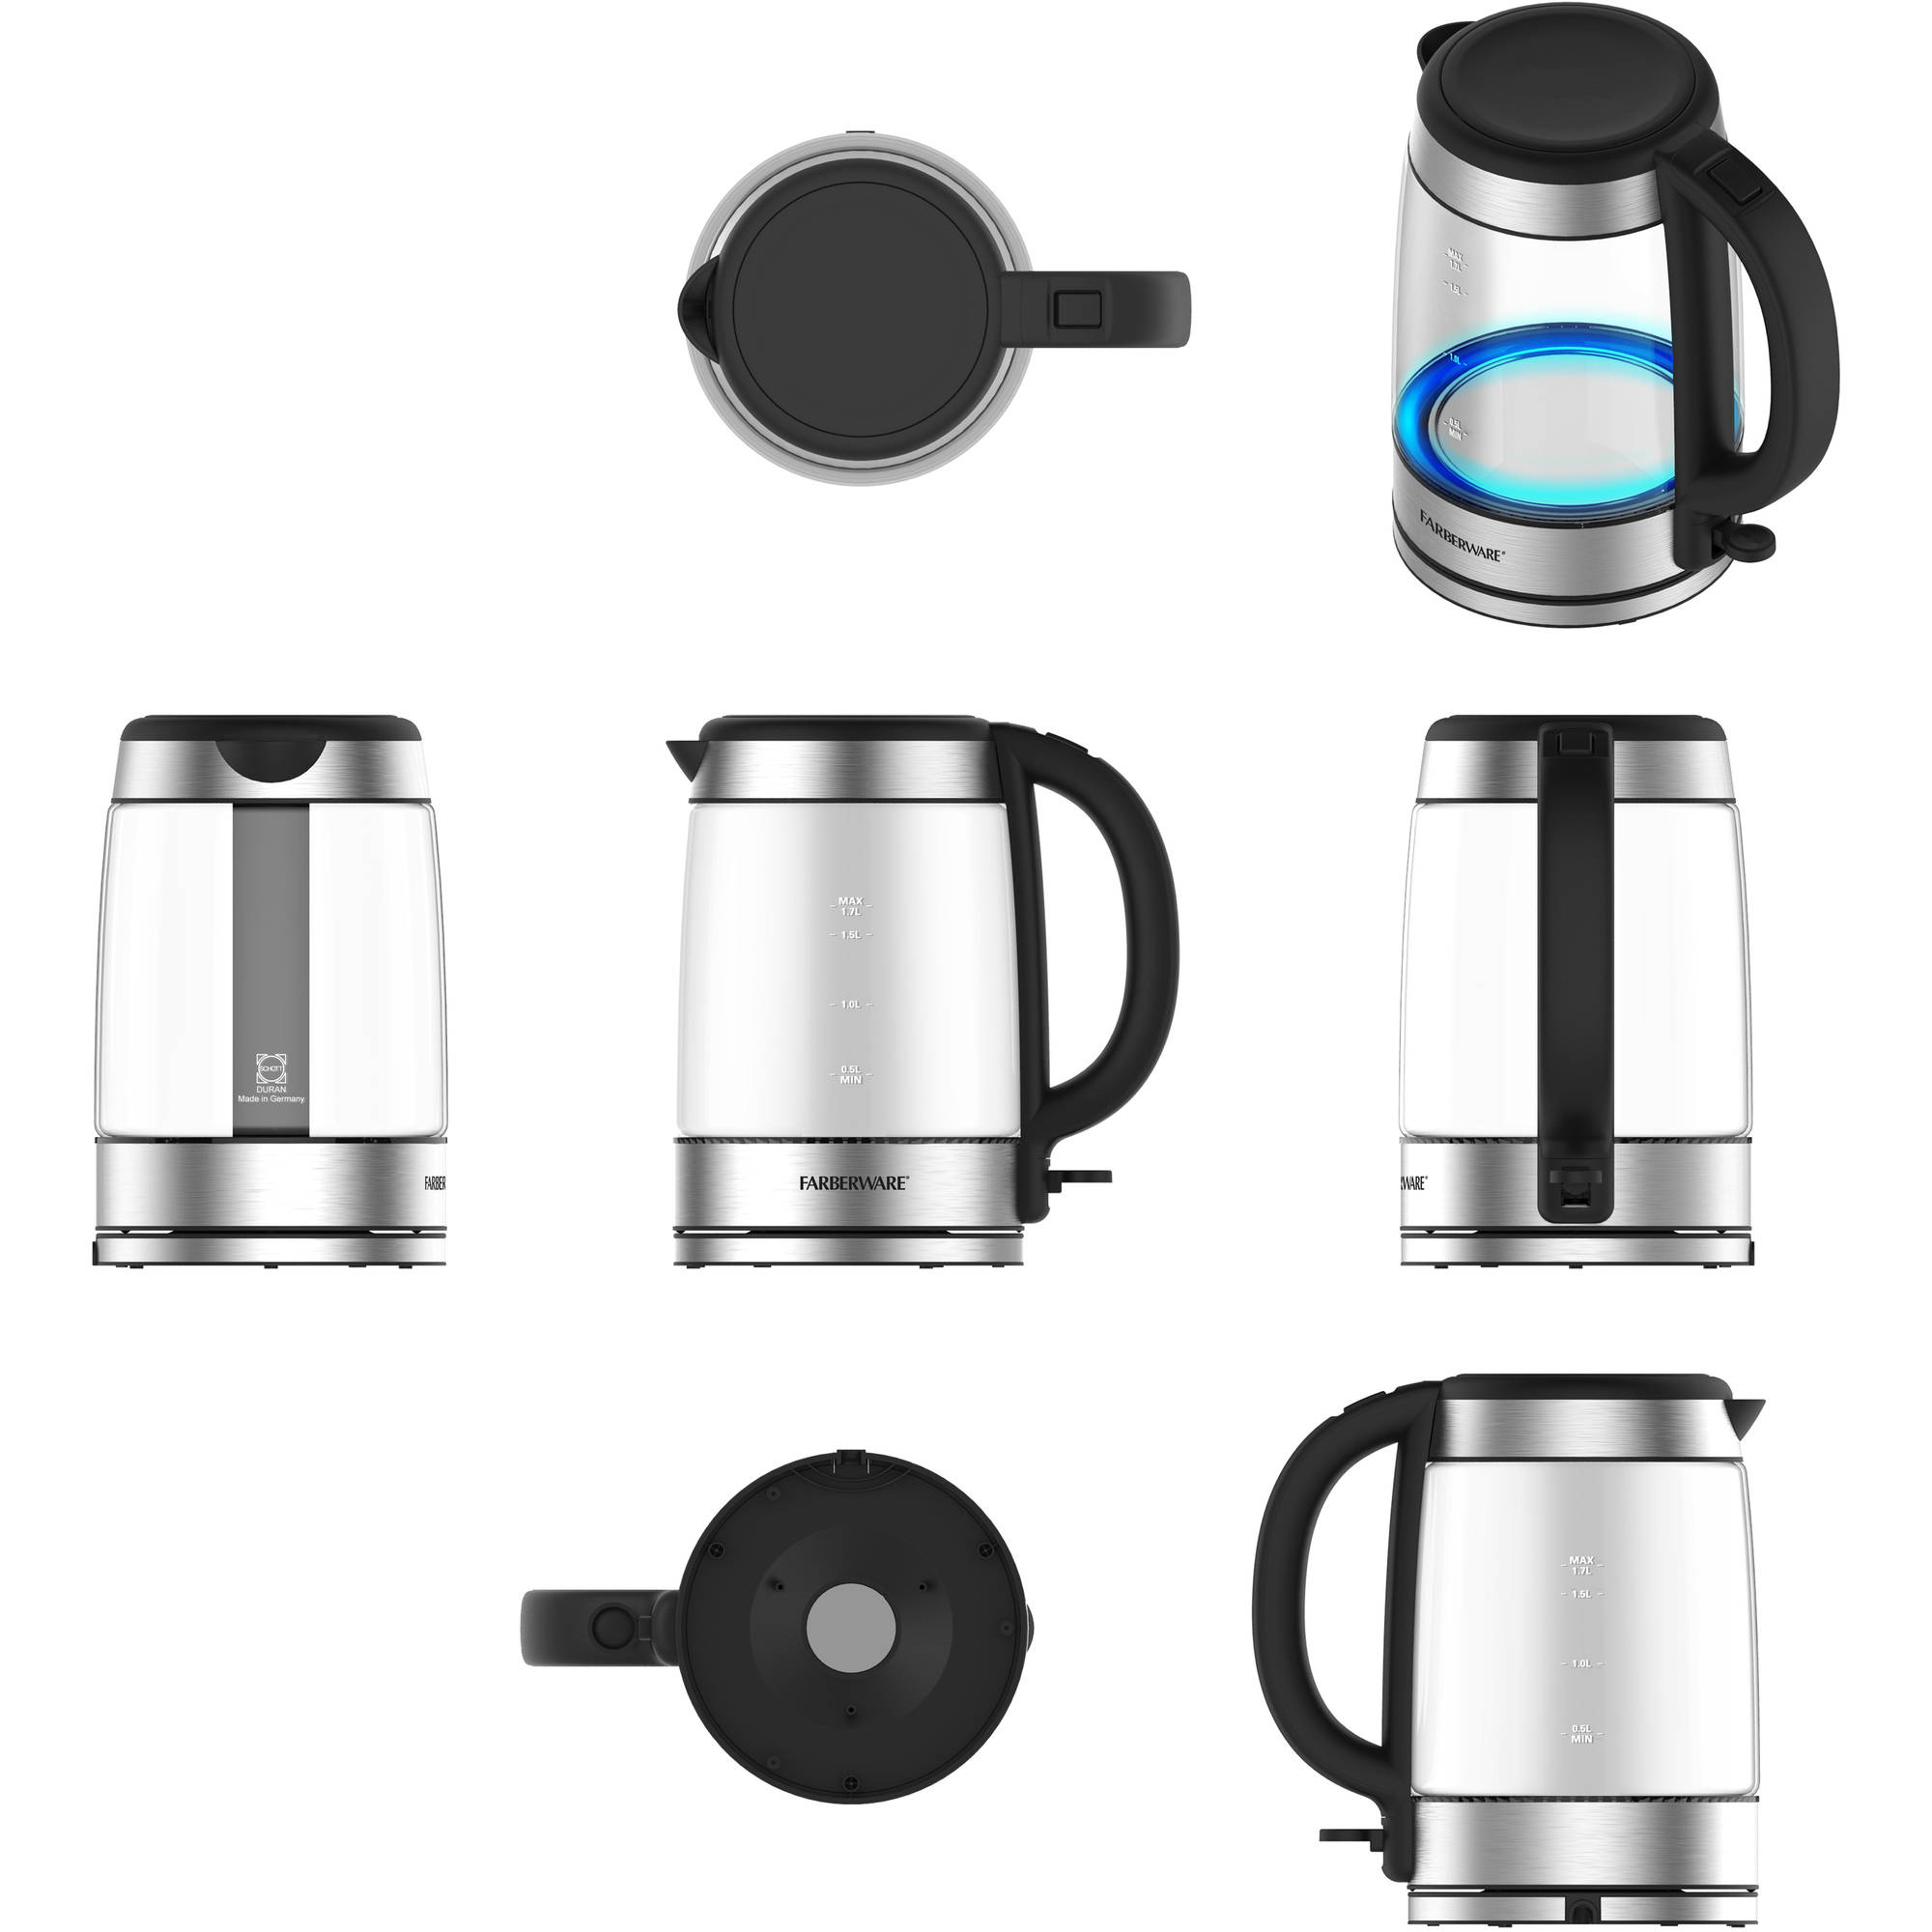 Farberware 1.7-Liter Glass Kettle by Wal-Mart Stores, Inc.